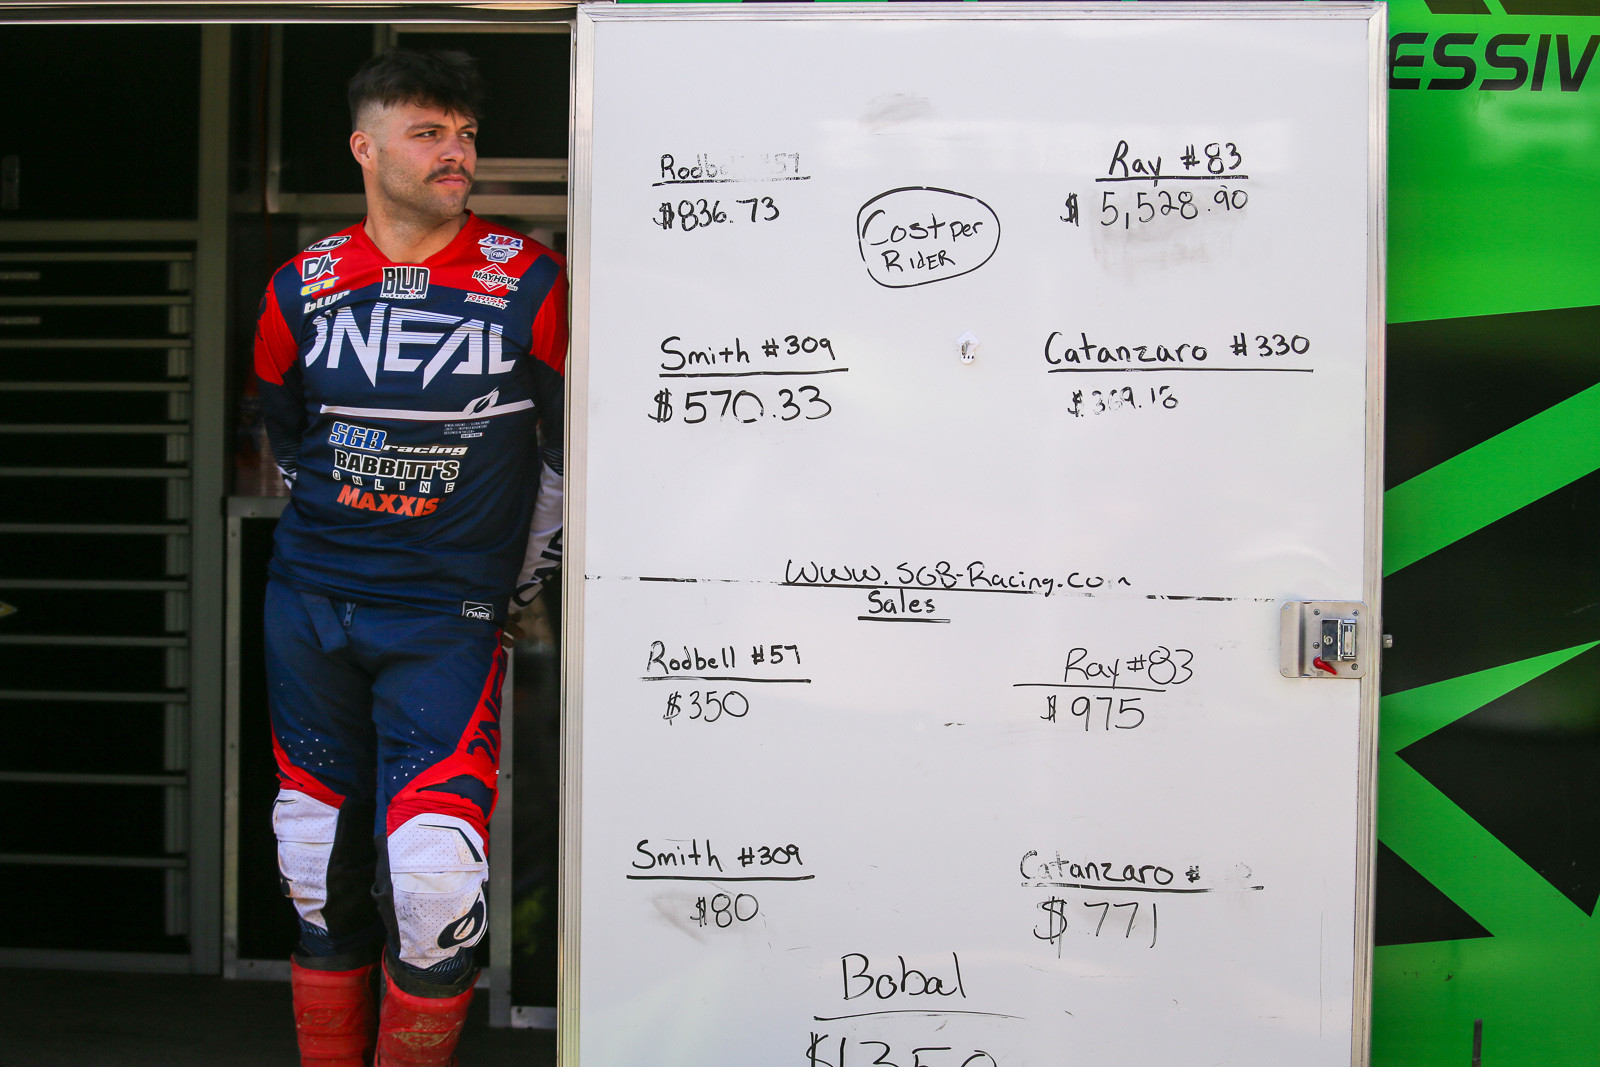 """For fun, SGB Racing has a running tally of parts consumed by the team riders. Alex Ray is """"winning"""" by a large margin. A couple of points to note there included a frame replacement (after he landed on Vince Friese's bike in Indy), and a blown-up engine at Daytona."""